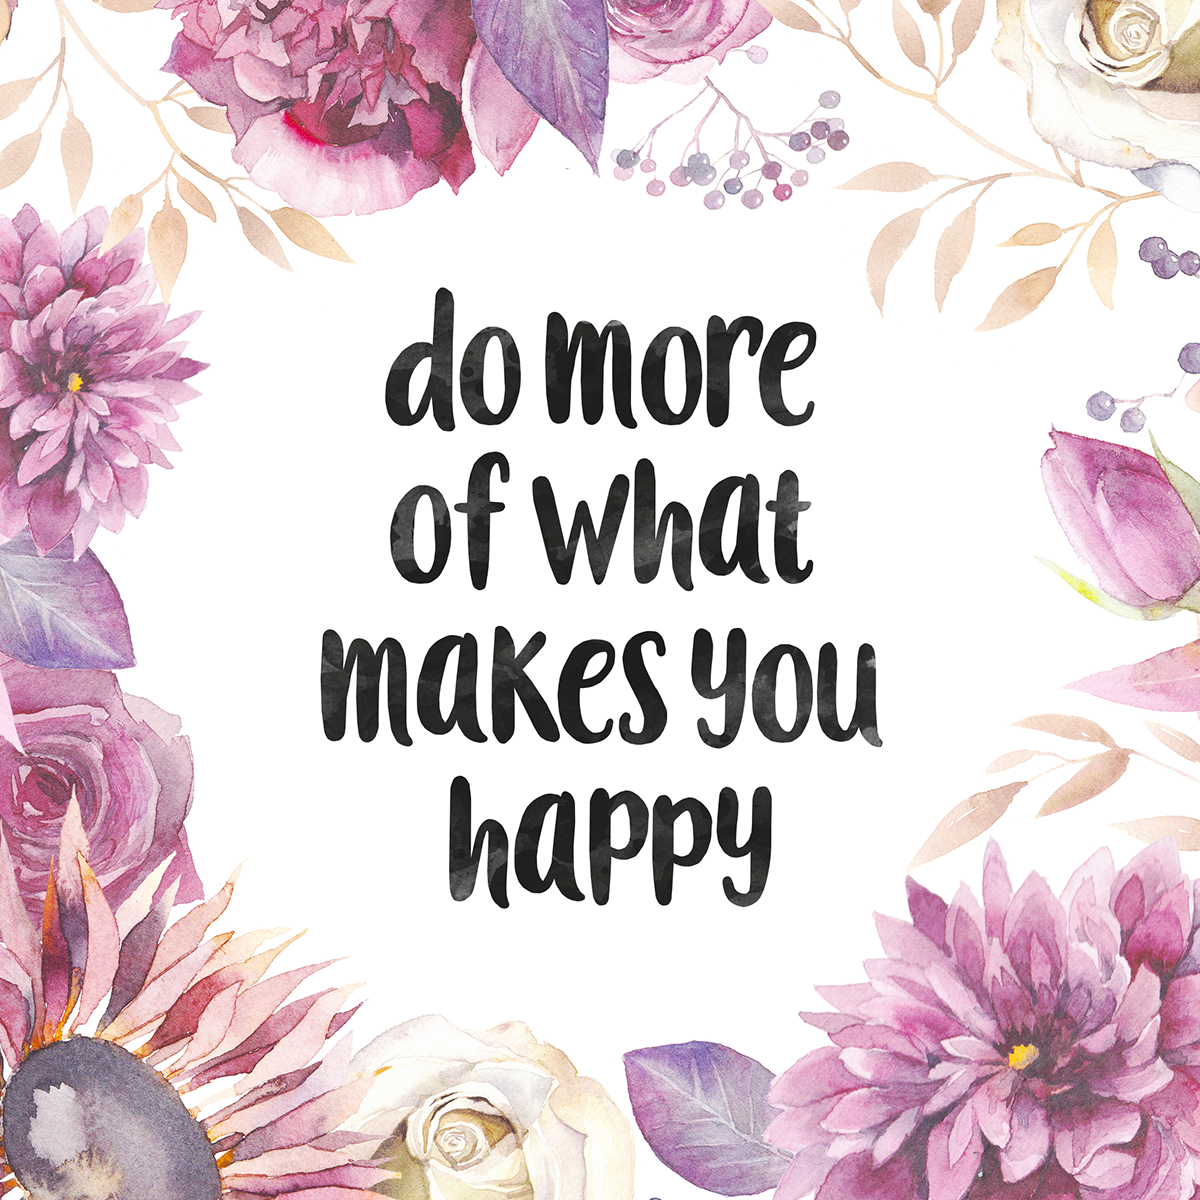 Pin by Delani Priester on Backgrounds   Pinterest   Happy quotes, Quotes and Make you happy quotes